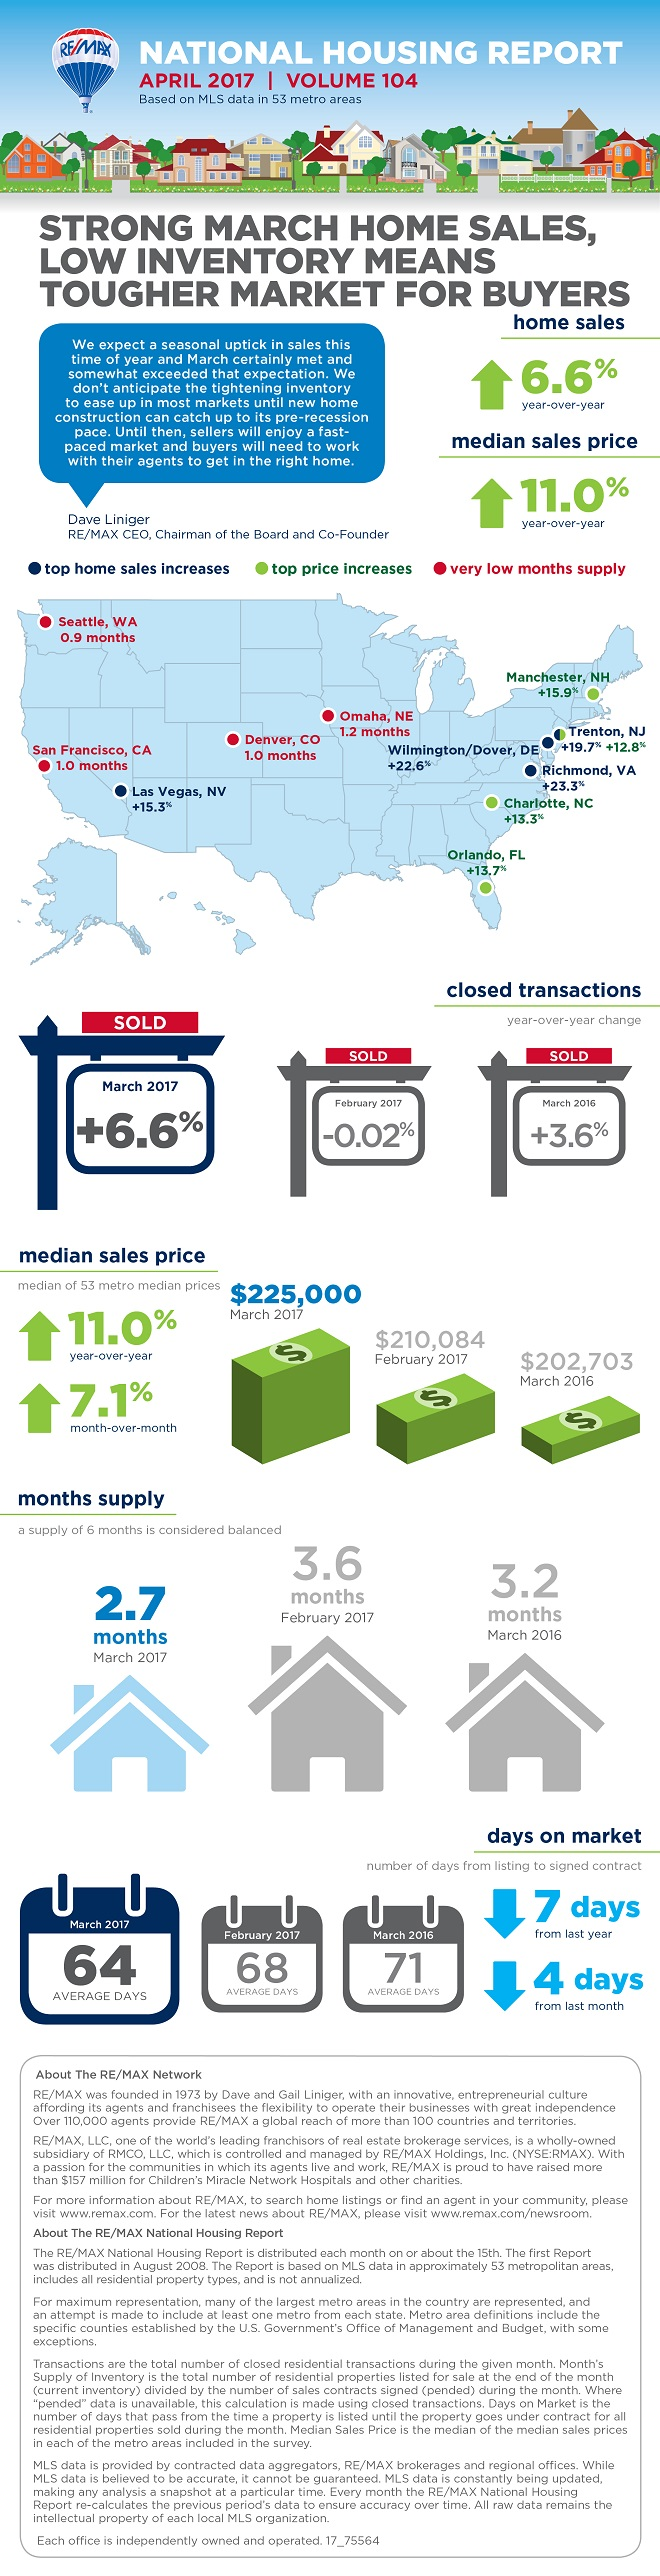 REMAX National Housing Report April 2017 Infographic